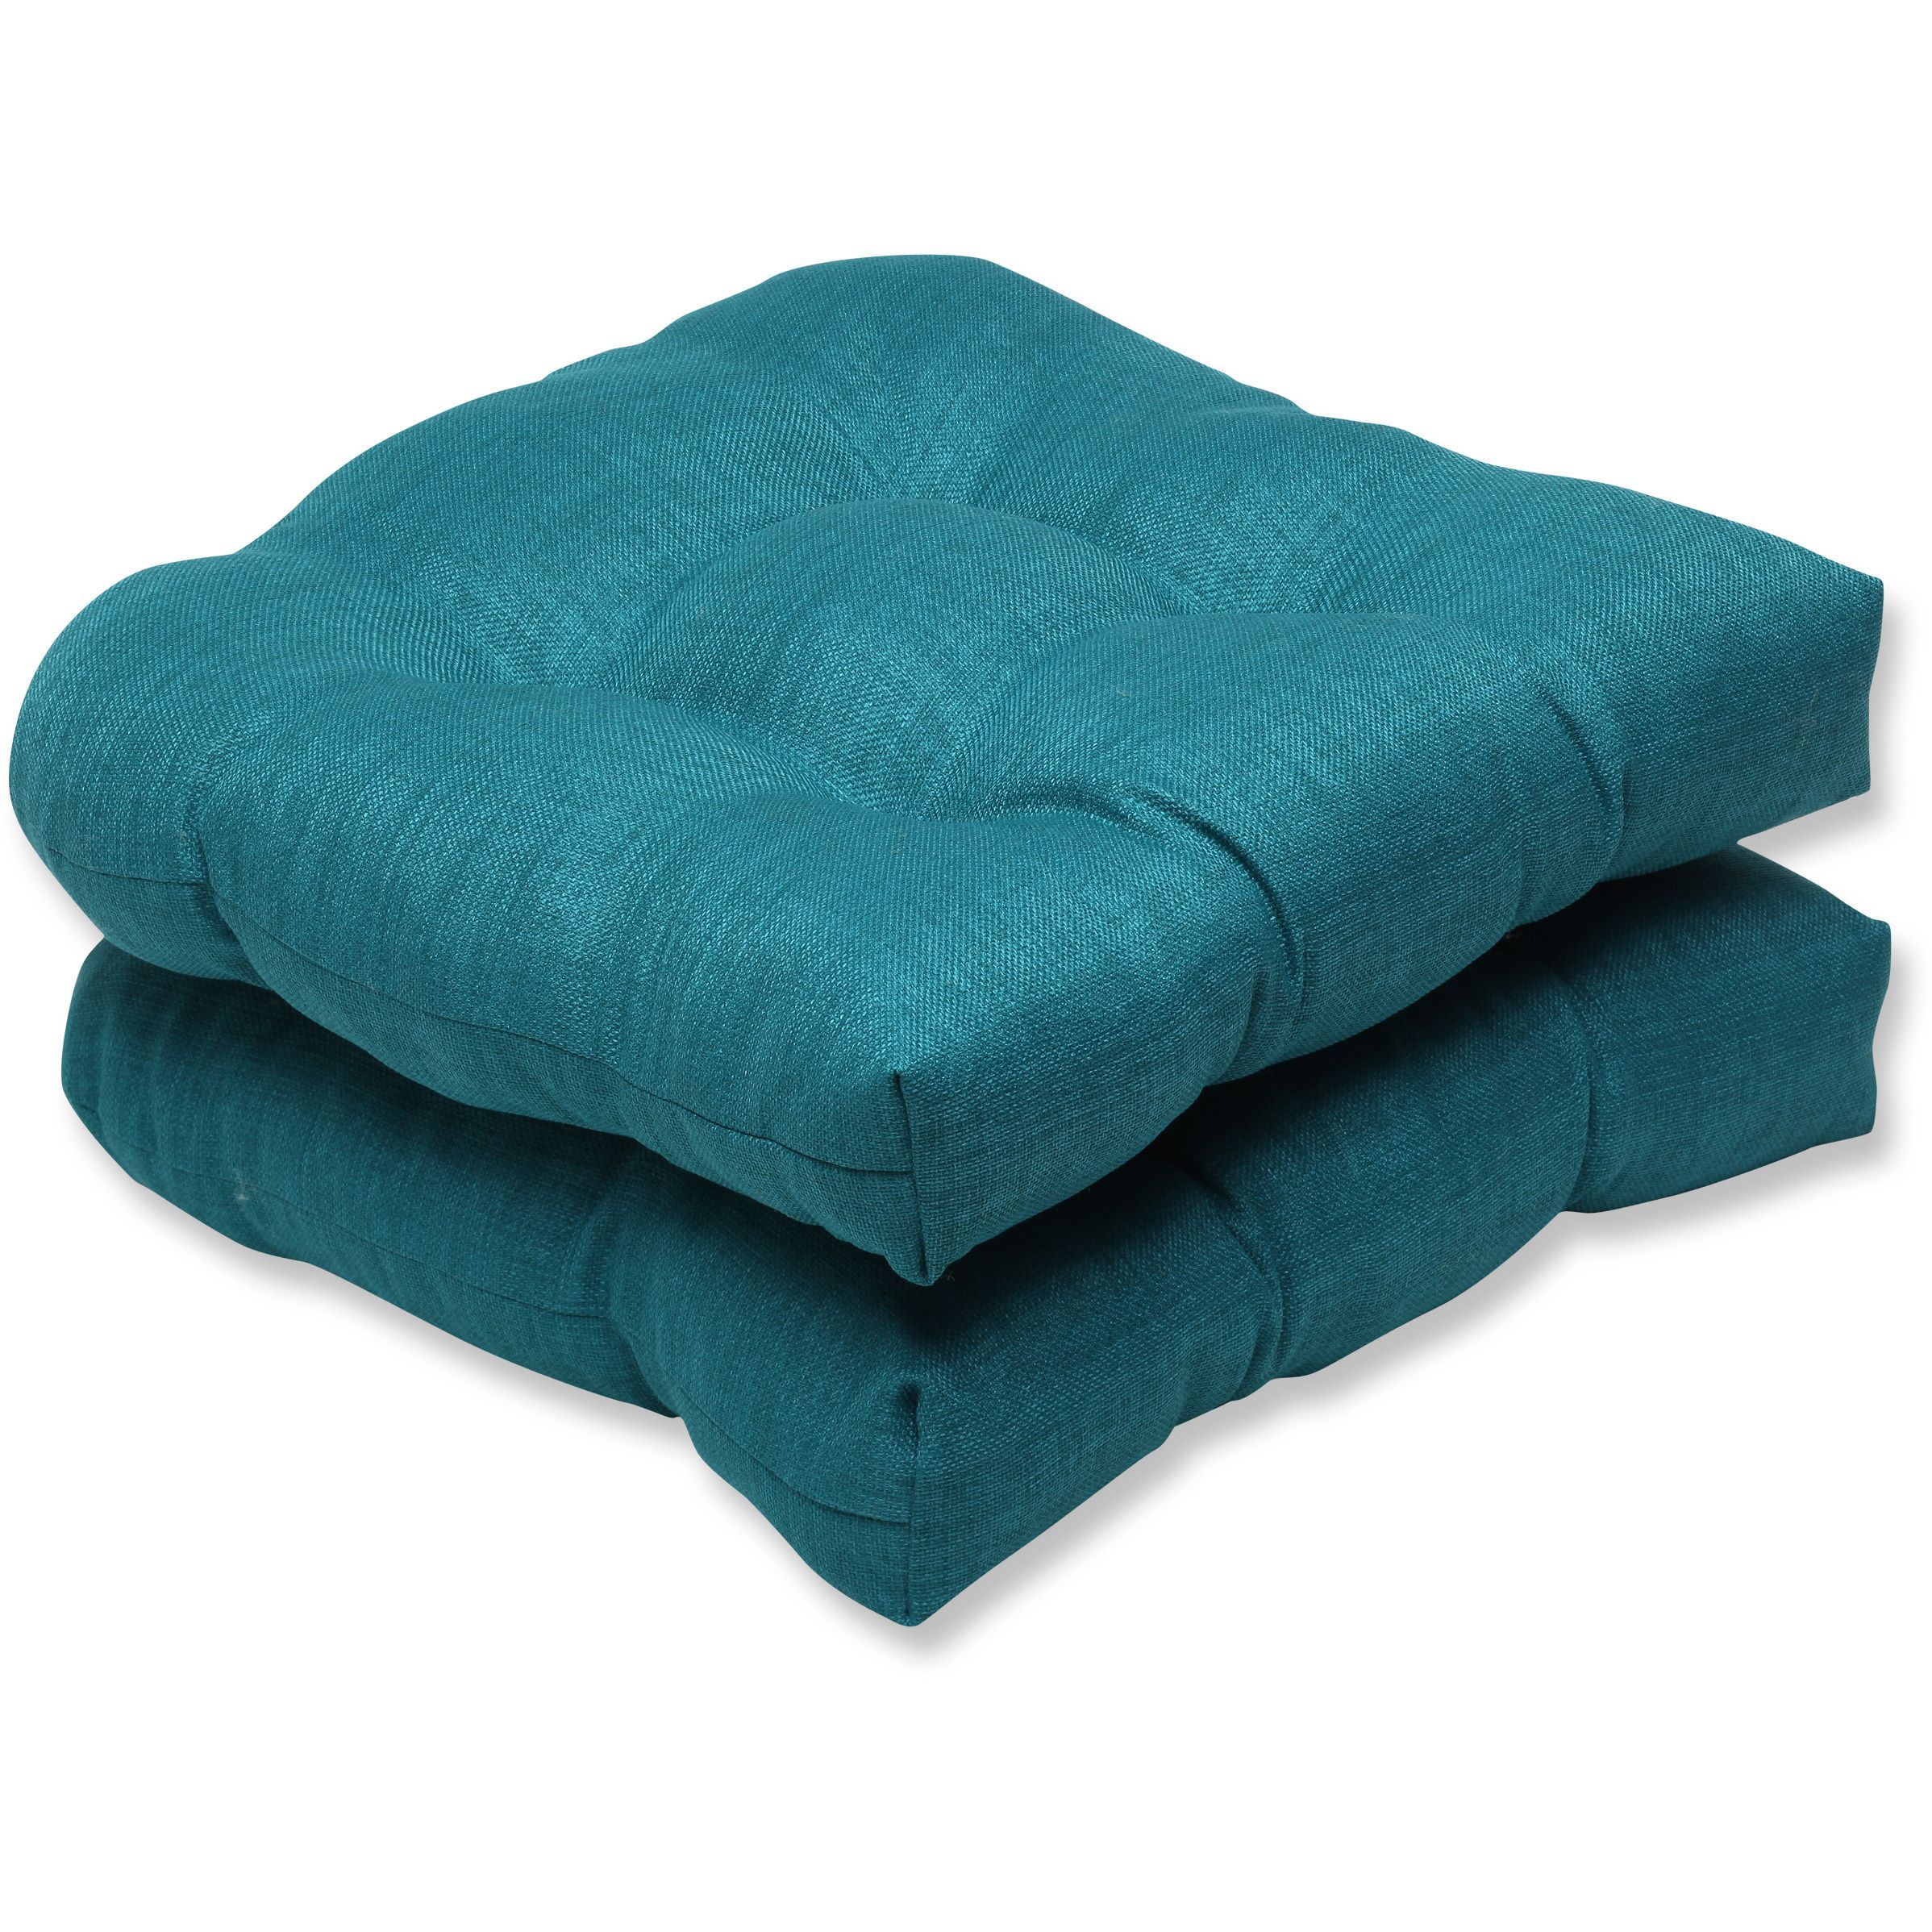 Pillow Perfect Outdoor Teal Wicker Seat Cushion Set Of 2 Outdoor Cushions And Pillows Outdoor Furniture Cushions Outdoor Wicker Seating